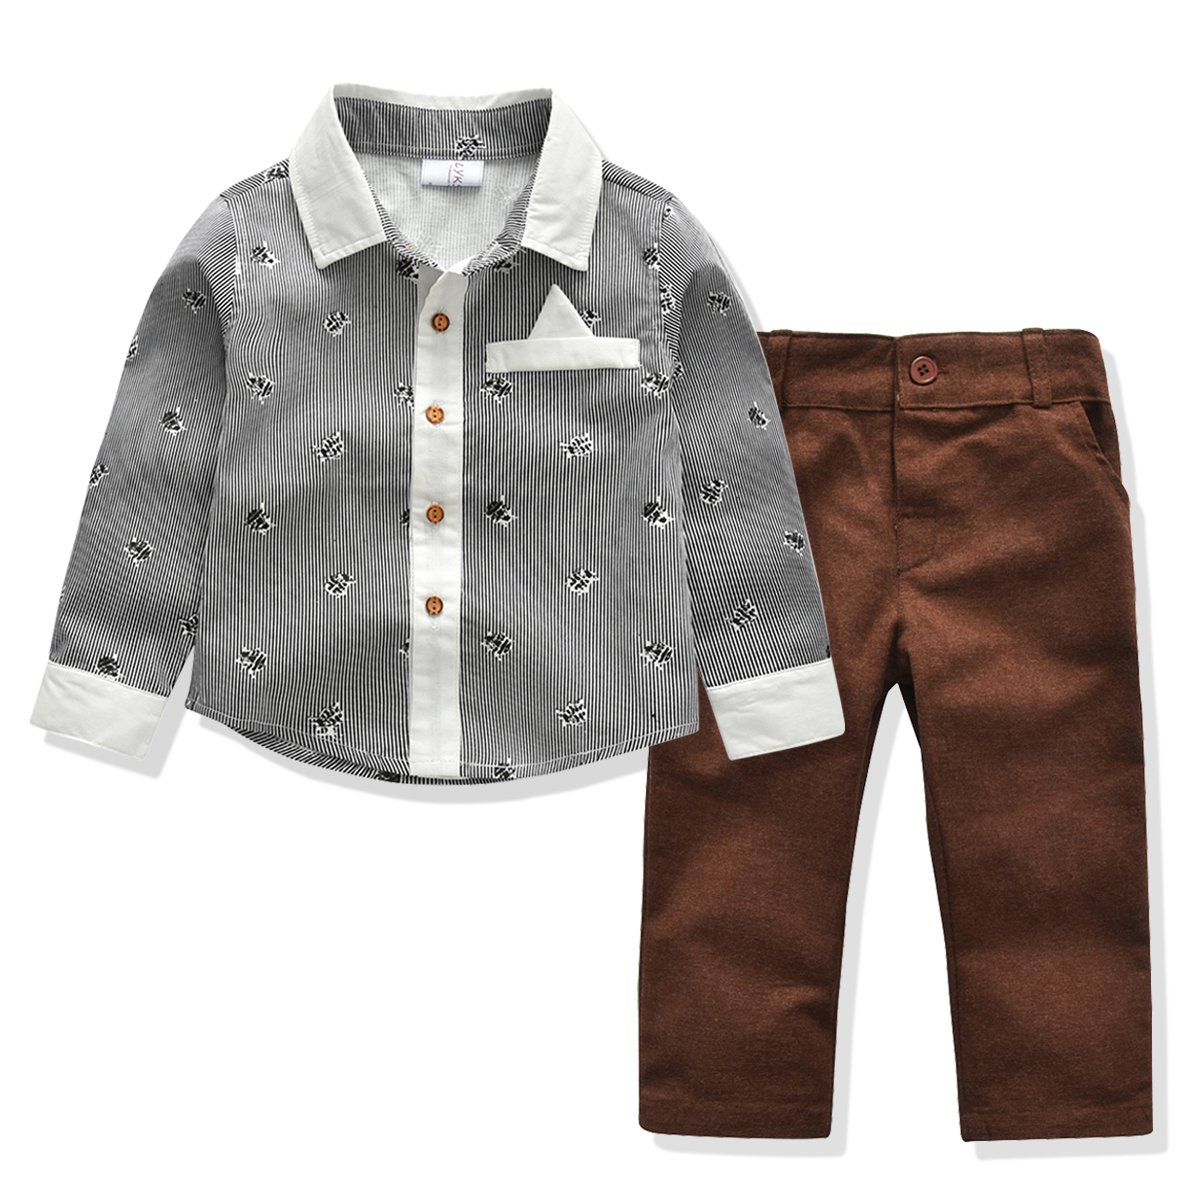 Kids Boys Clothing Set, Handsome Pattern 2 Pieces Outfits (5T)